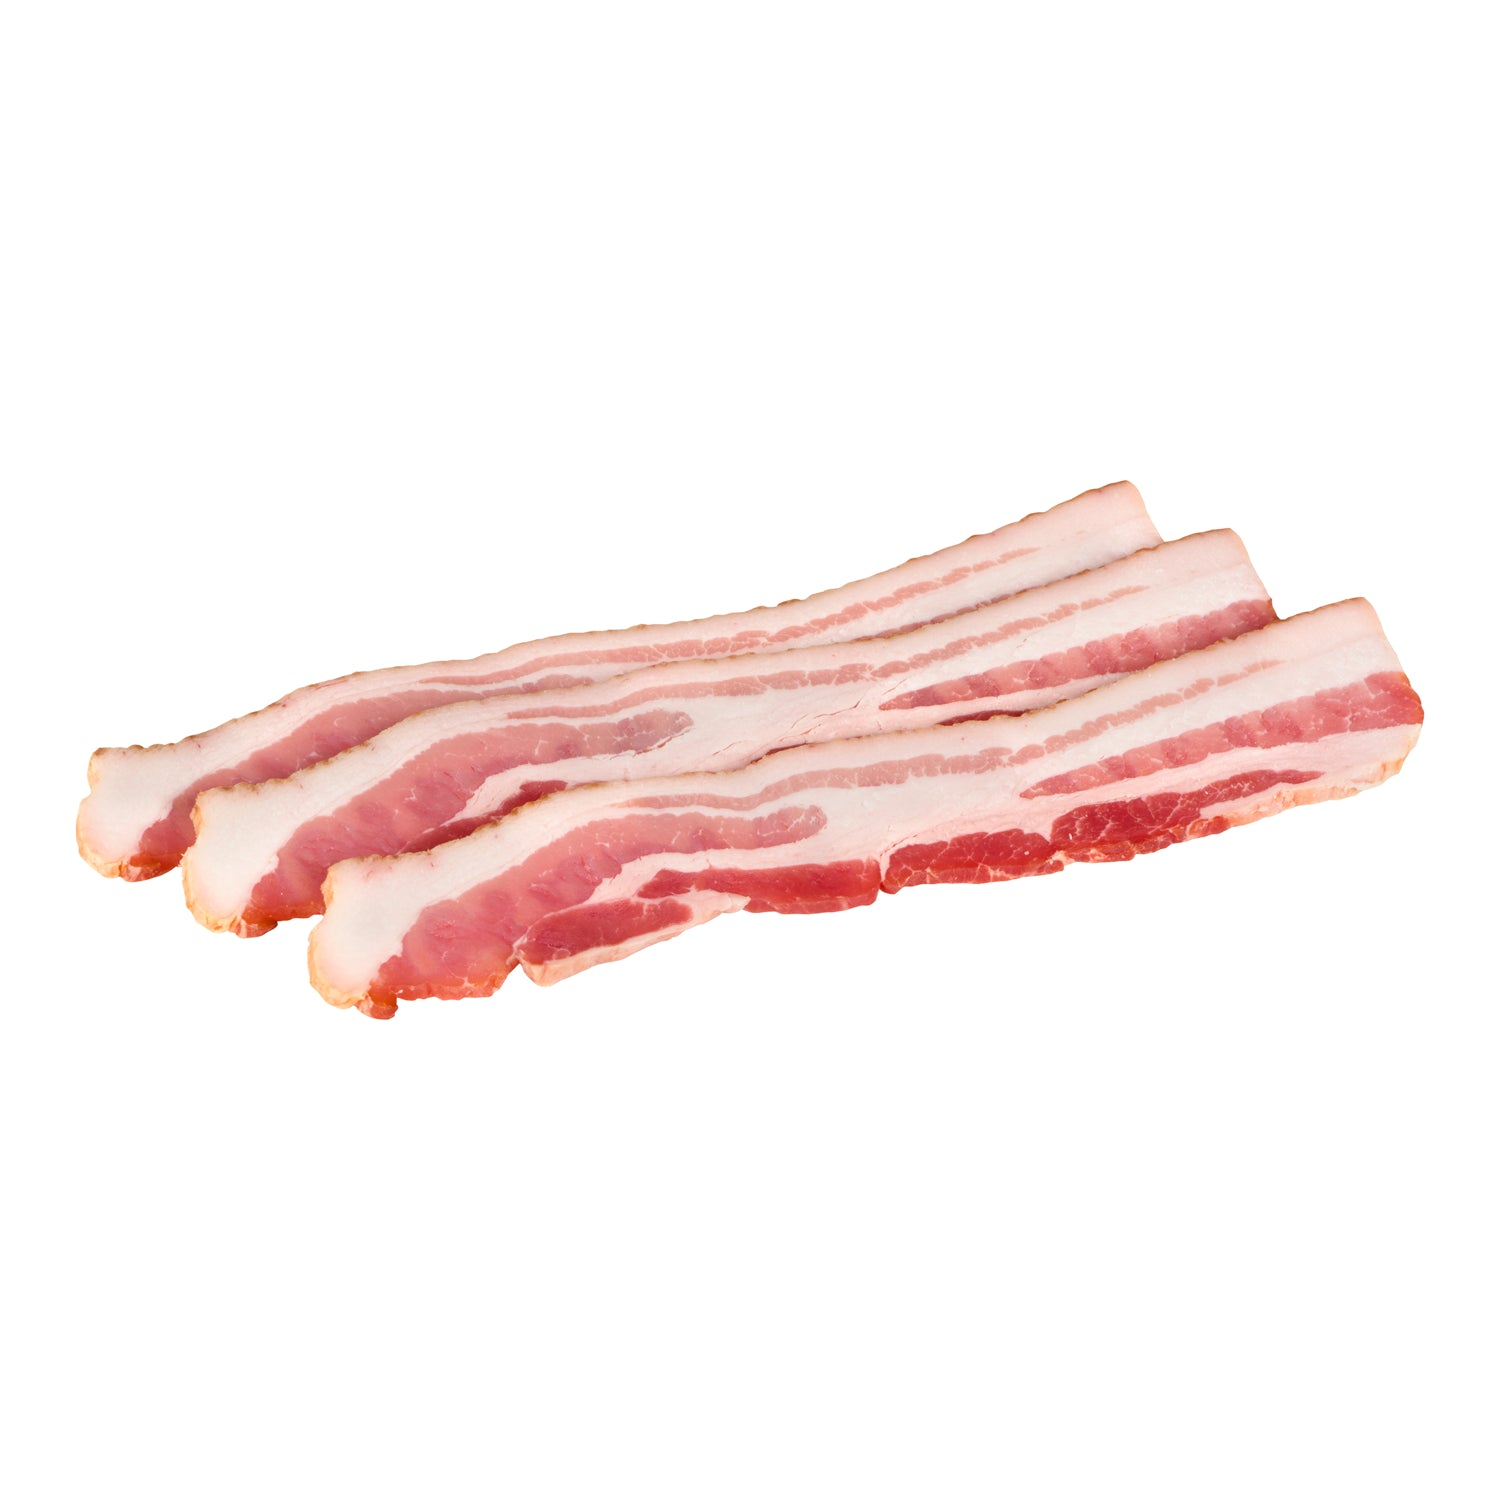 Sysco Supreme Fresh Premium Extra Thick Sliced Centre Cut Bacon 5 kg - 1 Pack [$12.30/kg]